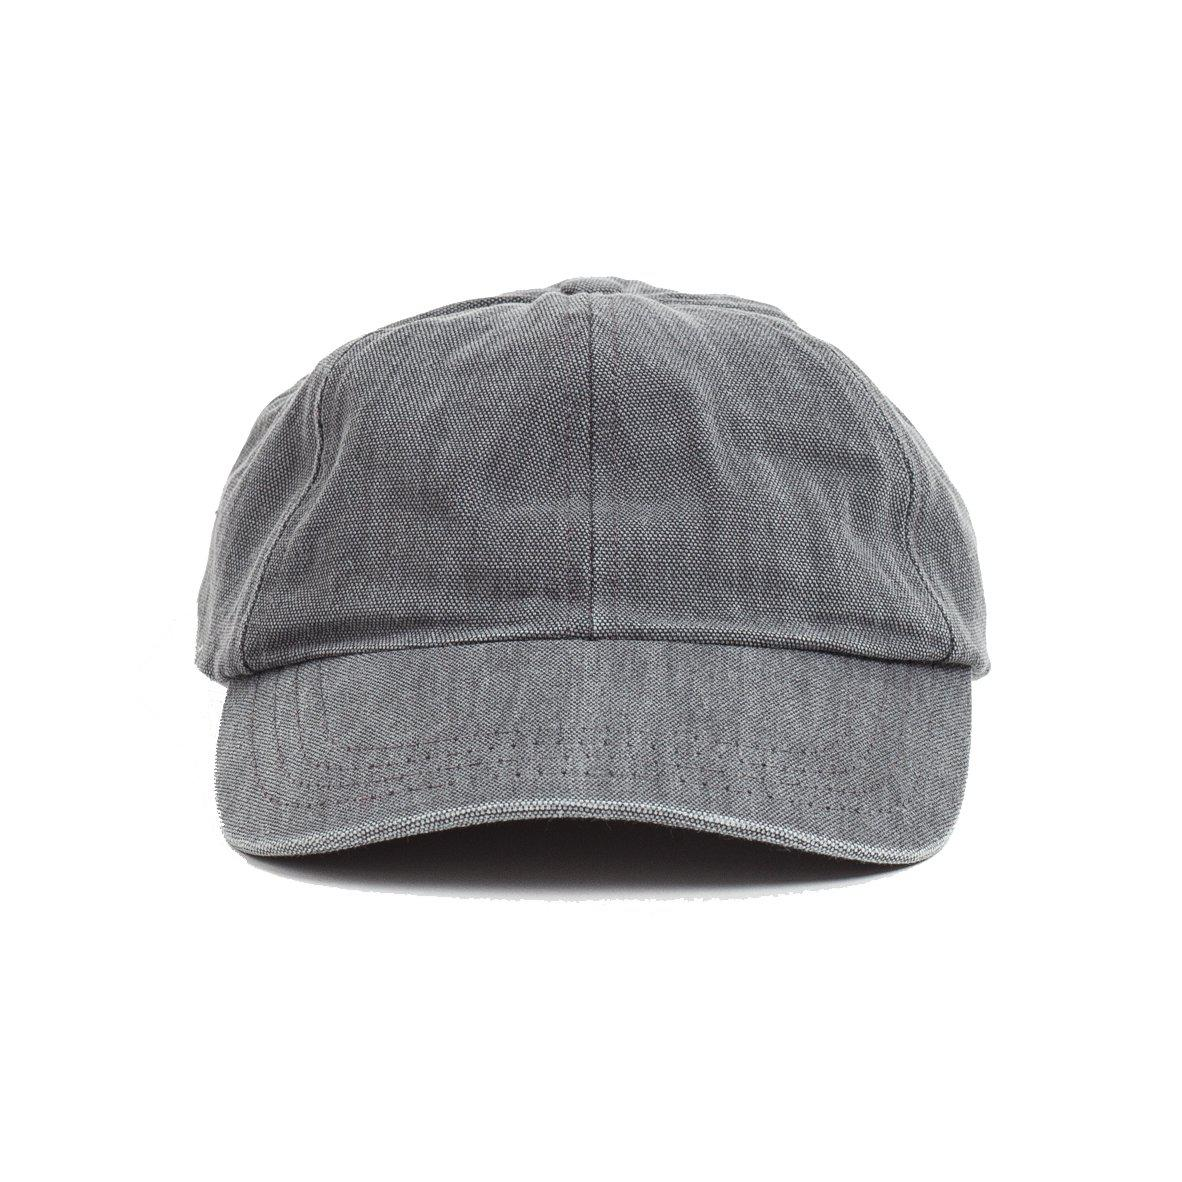 863a90a8a1e19 Corridor NYC Distressed Canvas Cap in Gray for Men - Lyst